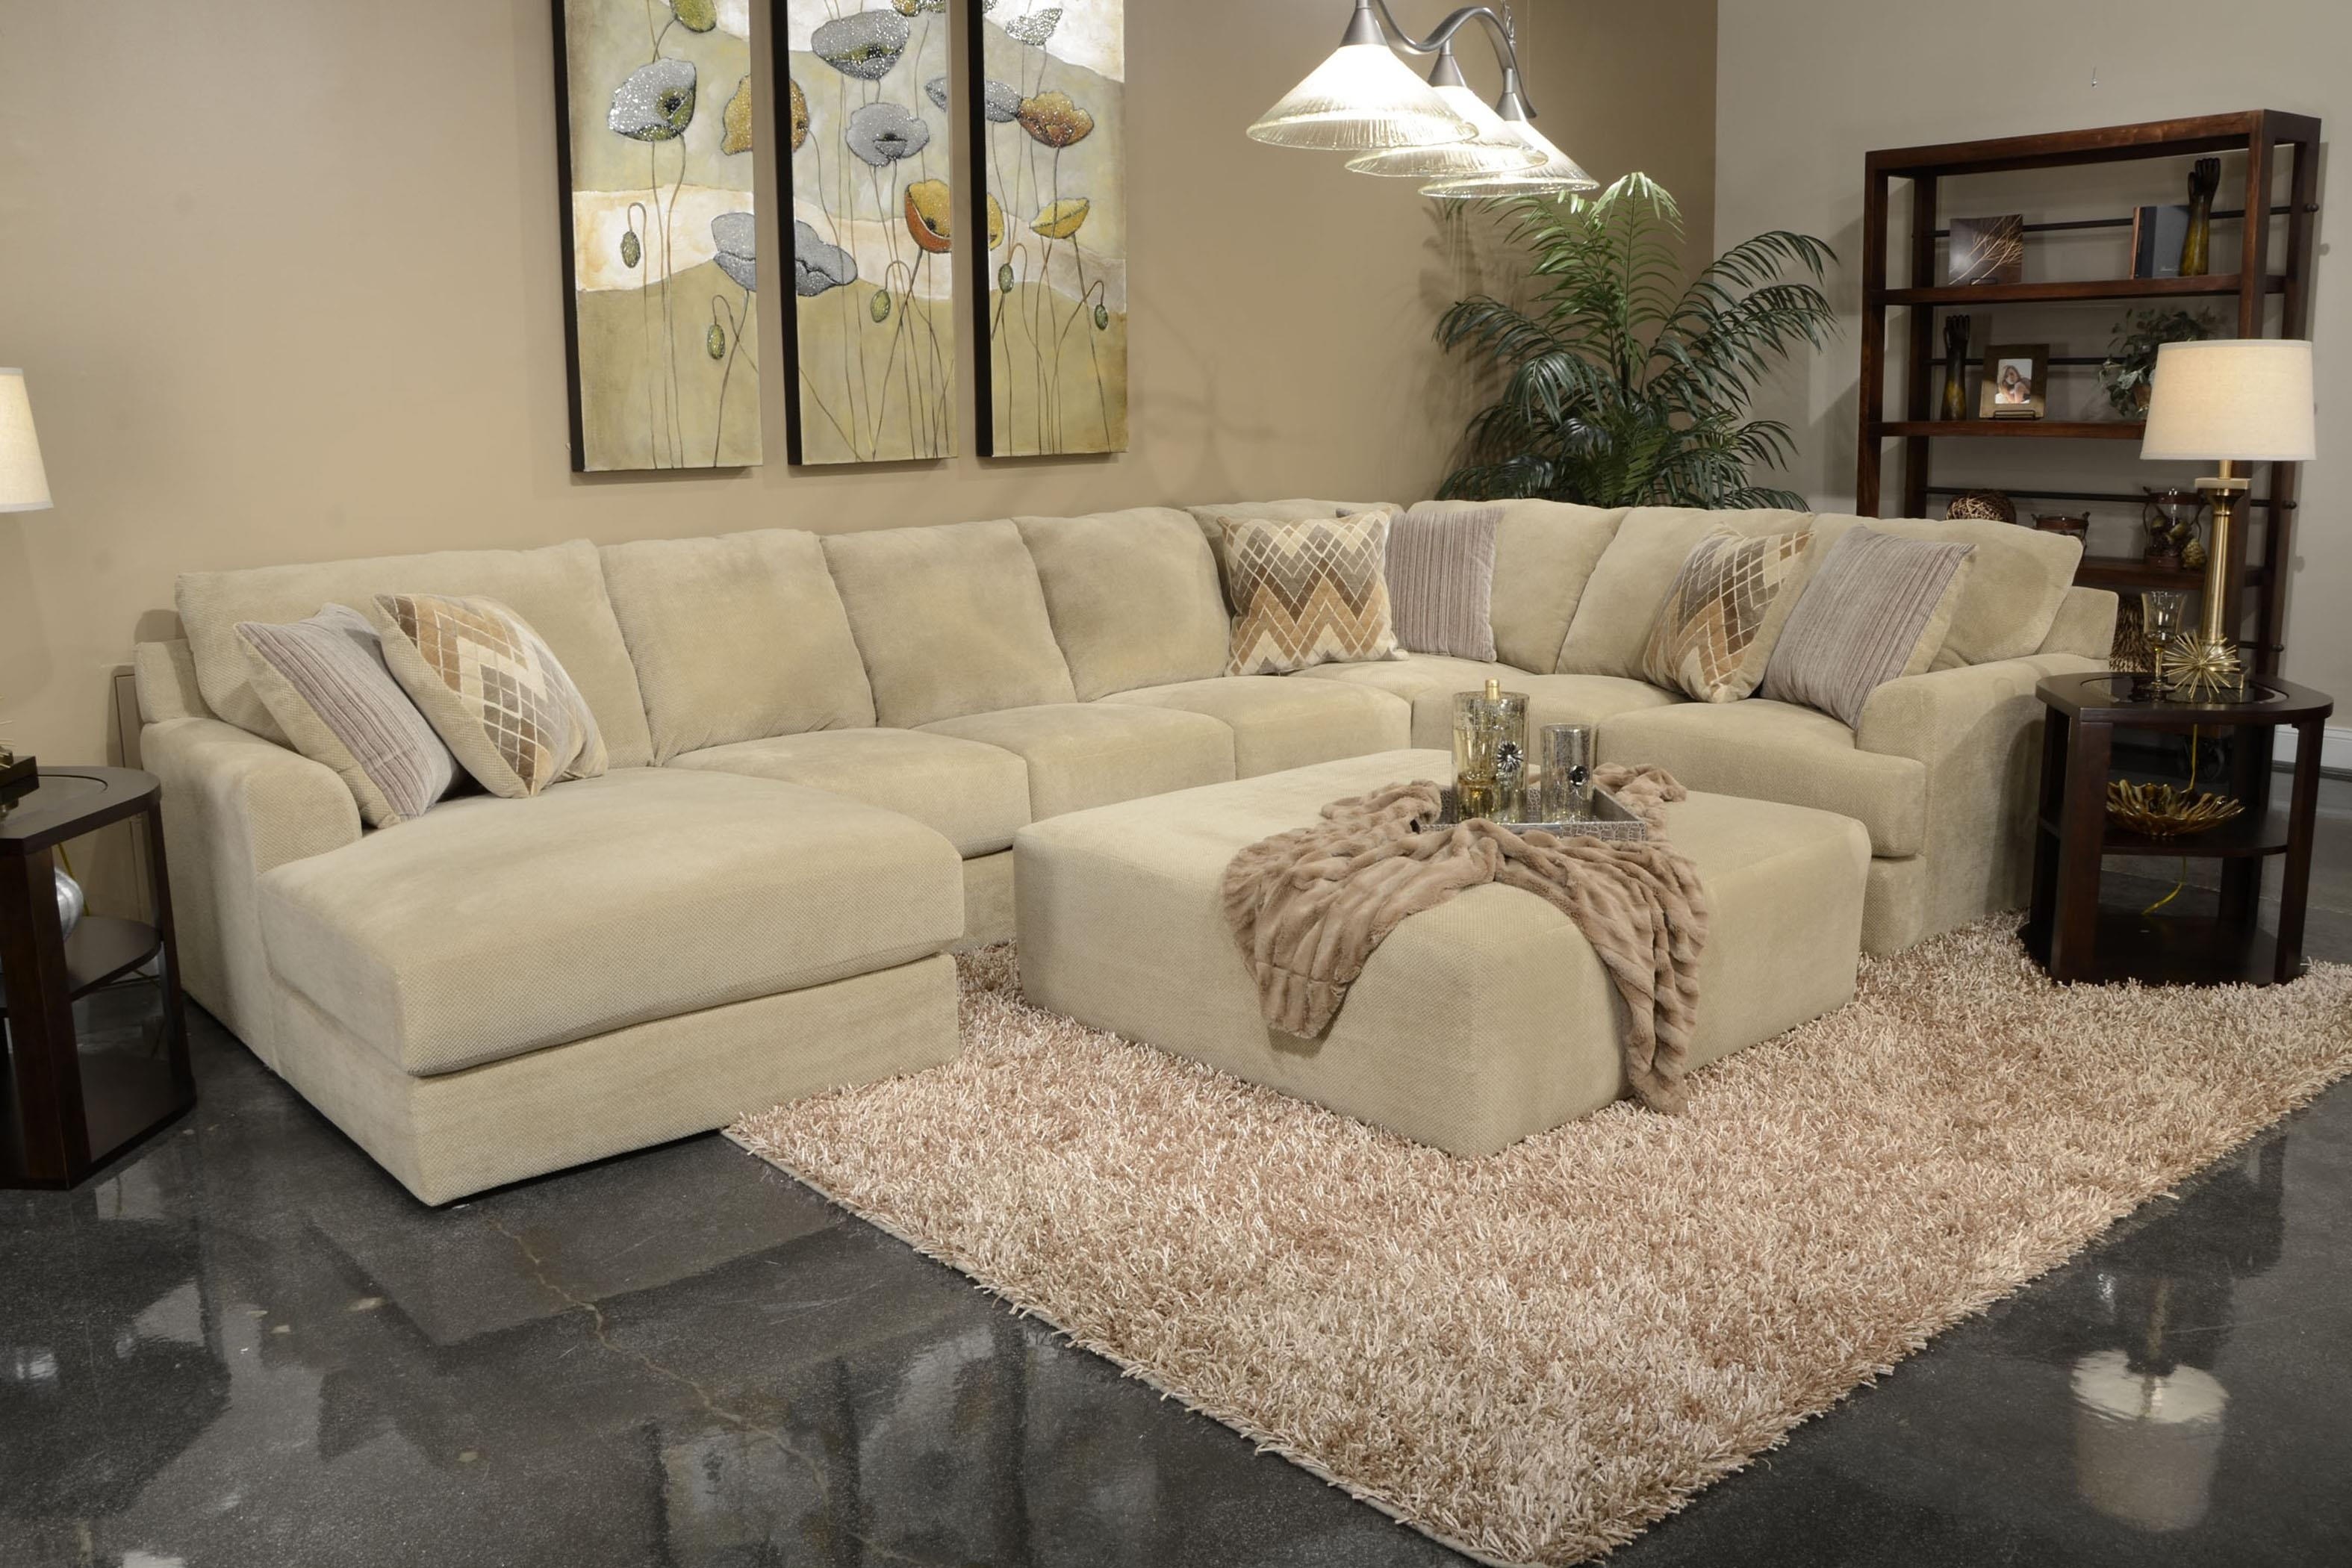 Six Seat Sectional Sofajackson Furniture | Wolf And Gardiner Intended For Gardiners Sectional Sofas (Image 10 of 10)